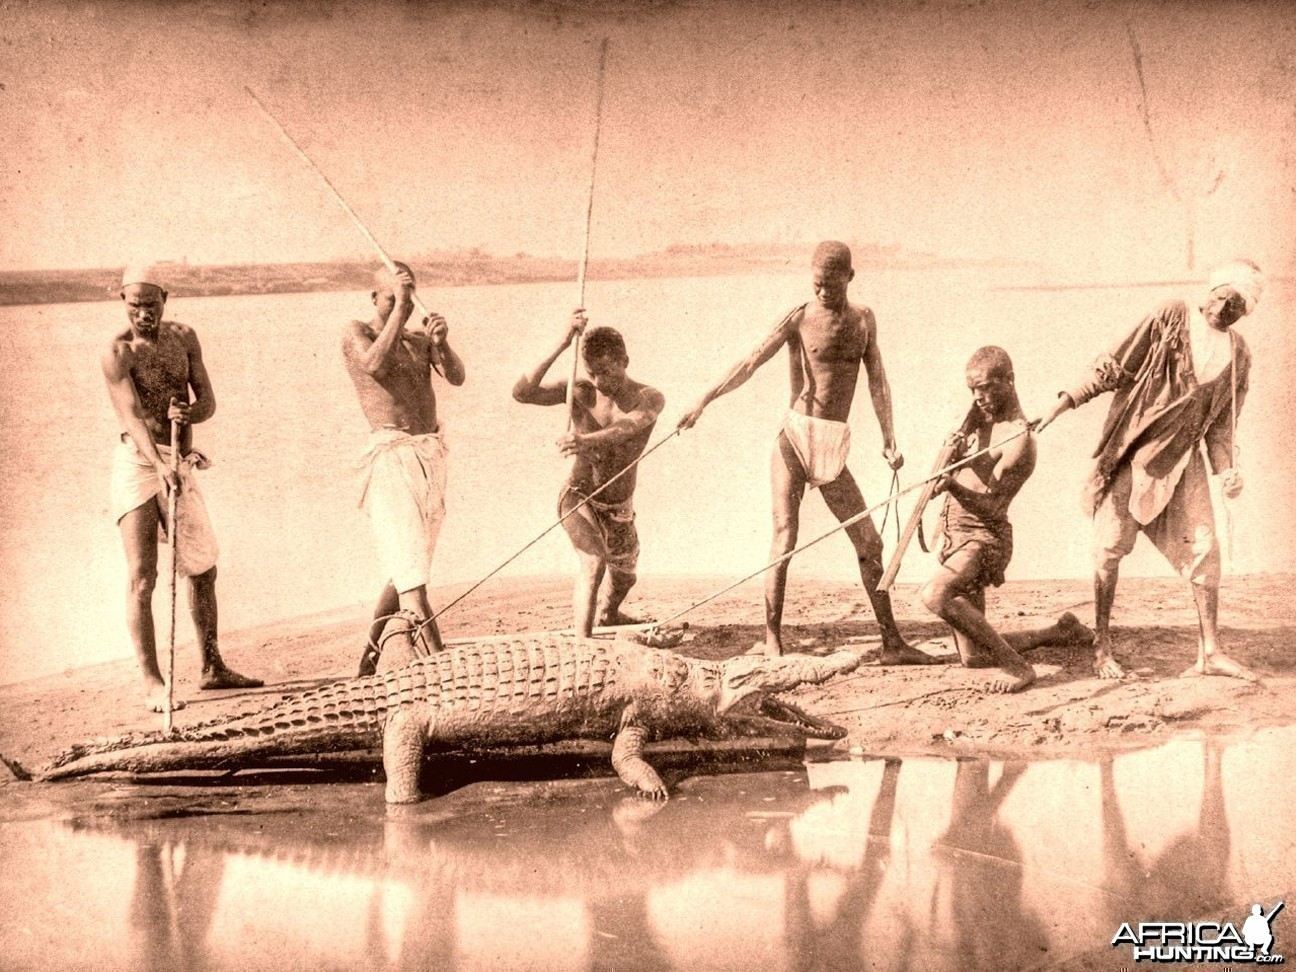 Crocodile hunting at the Nile